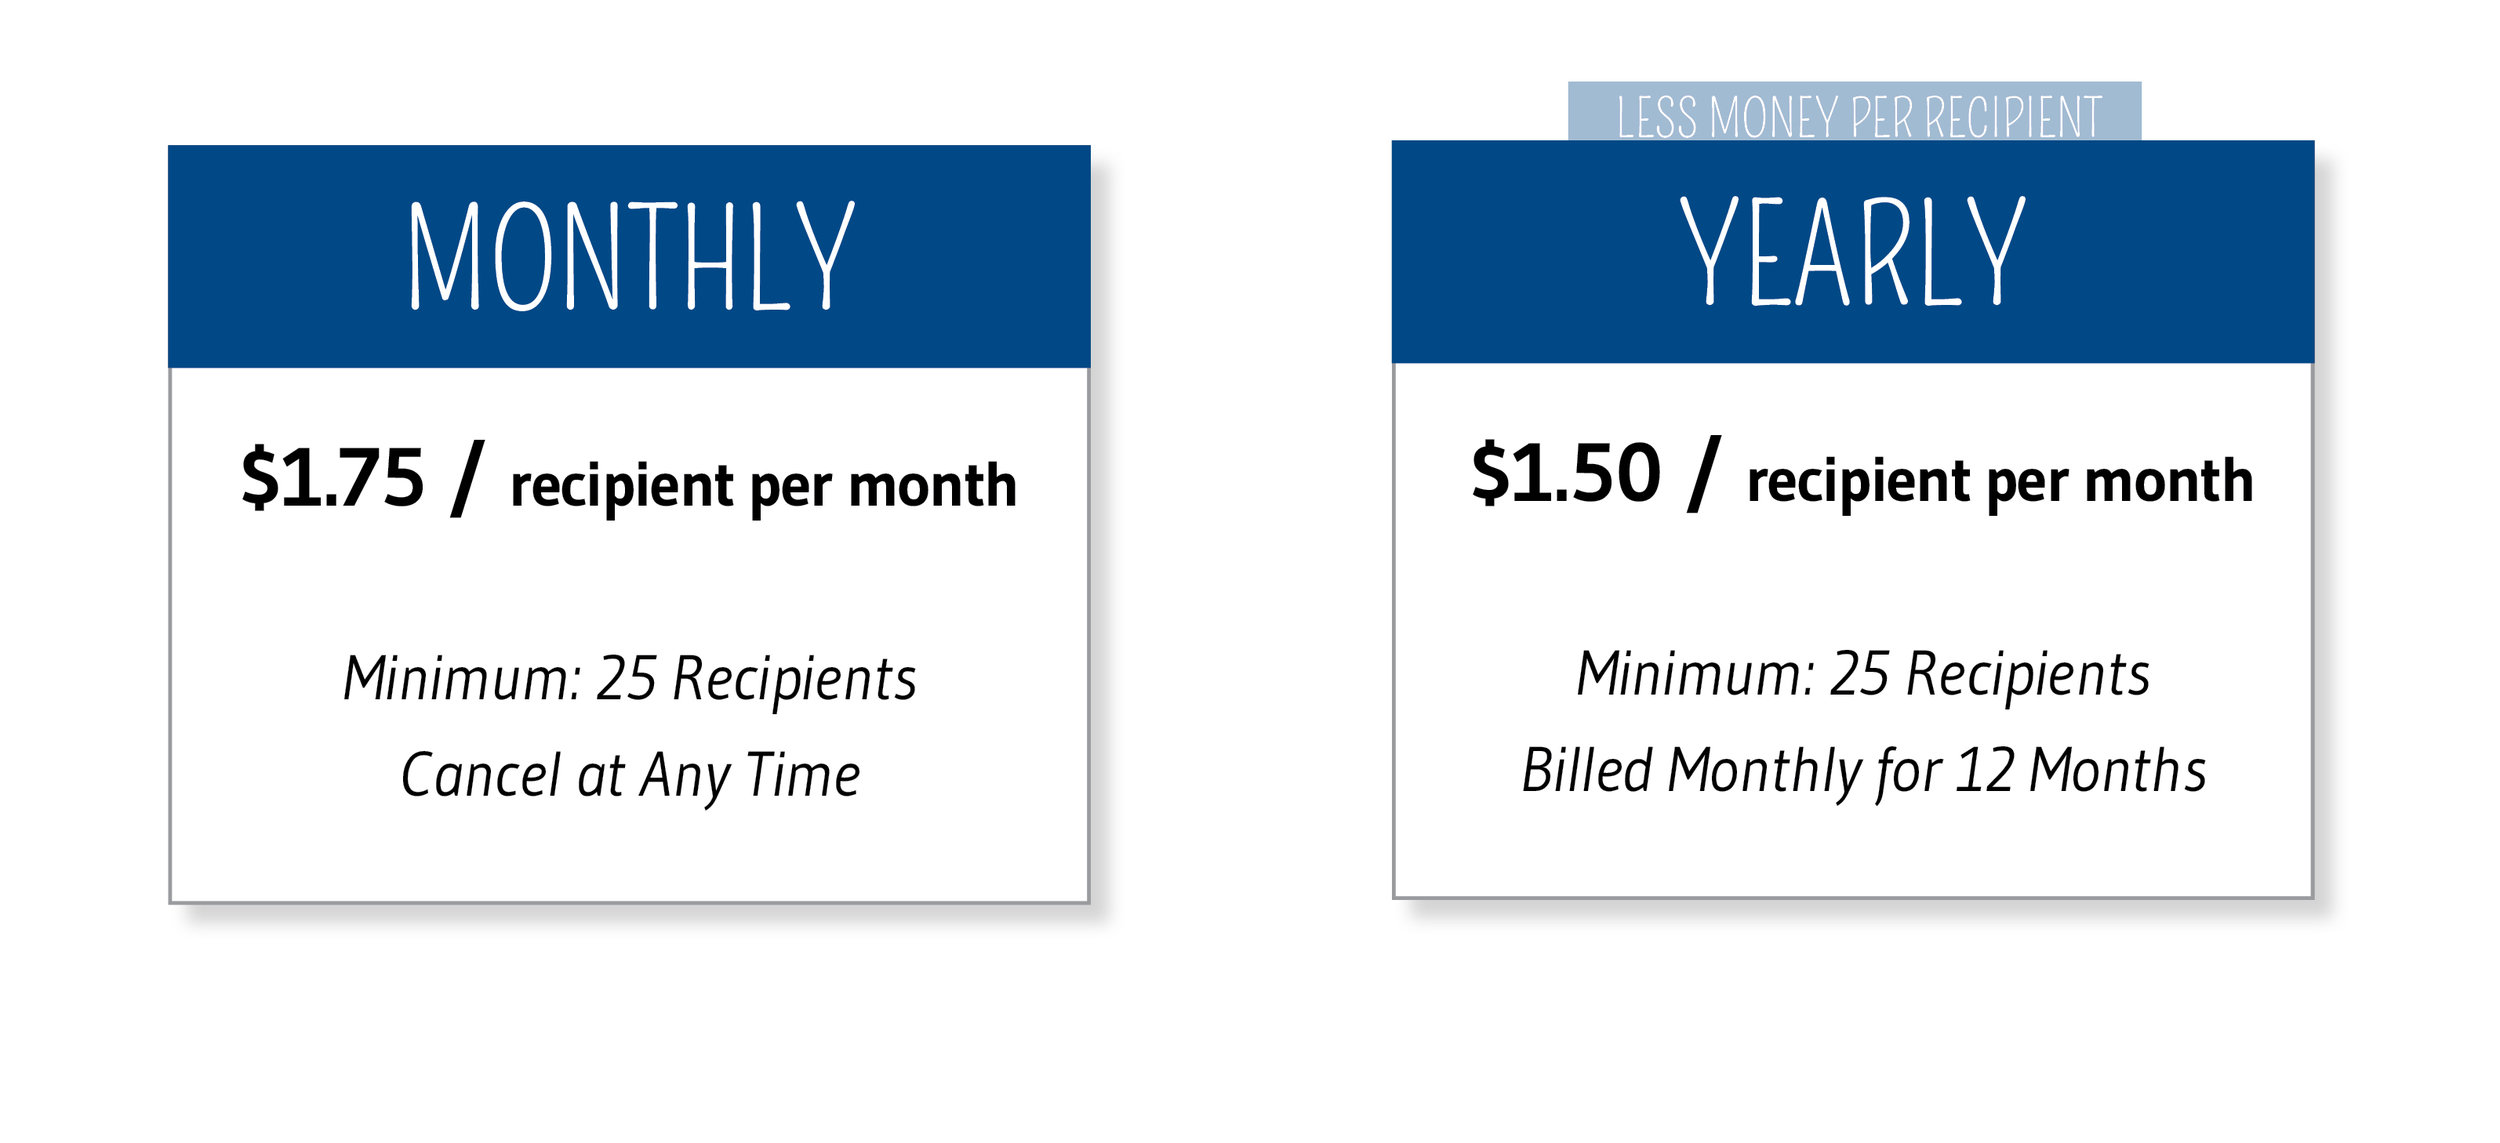 public pricing monthly yearly.jpg